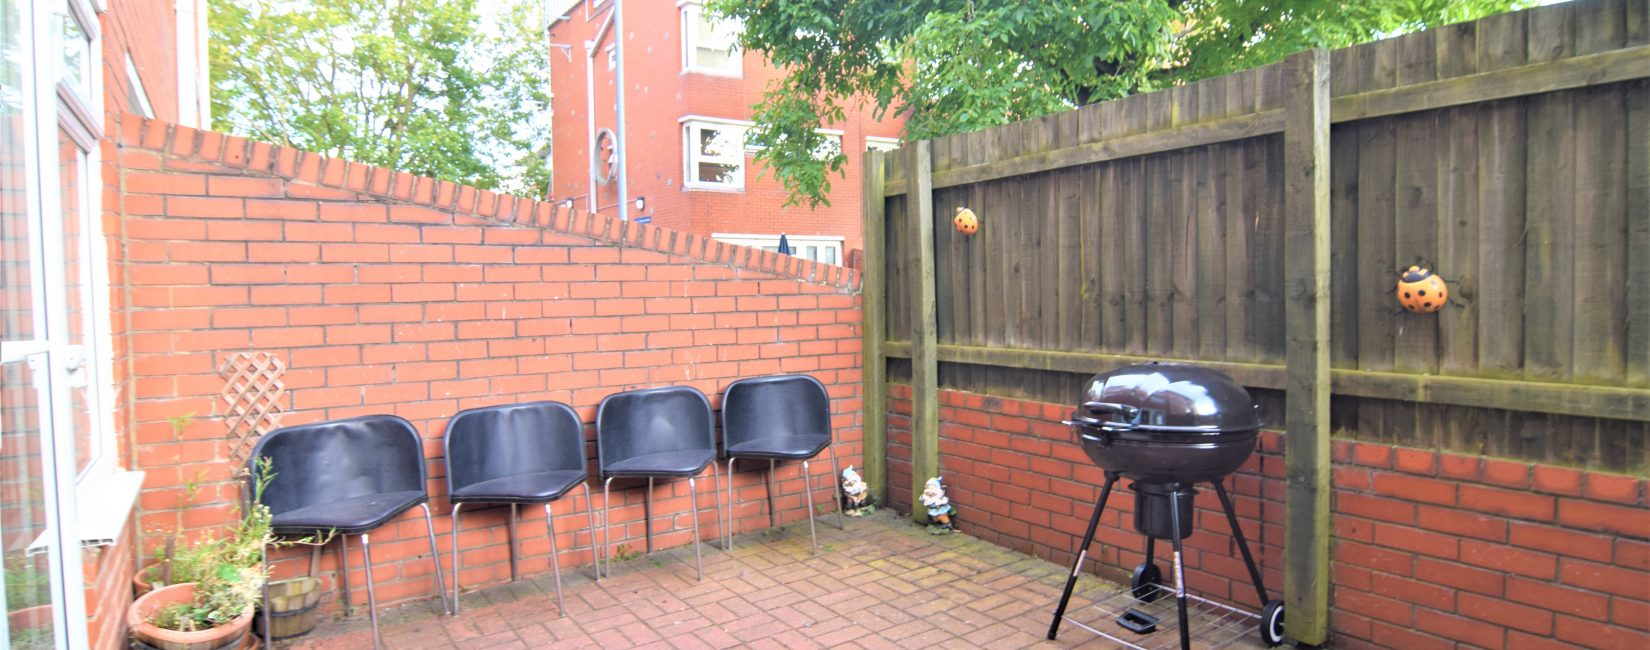 Terrace for BBQs etc